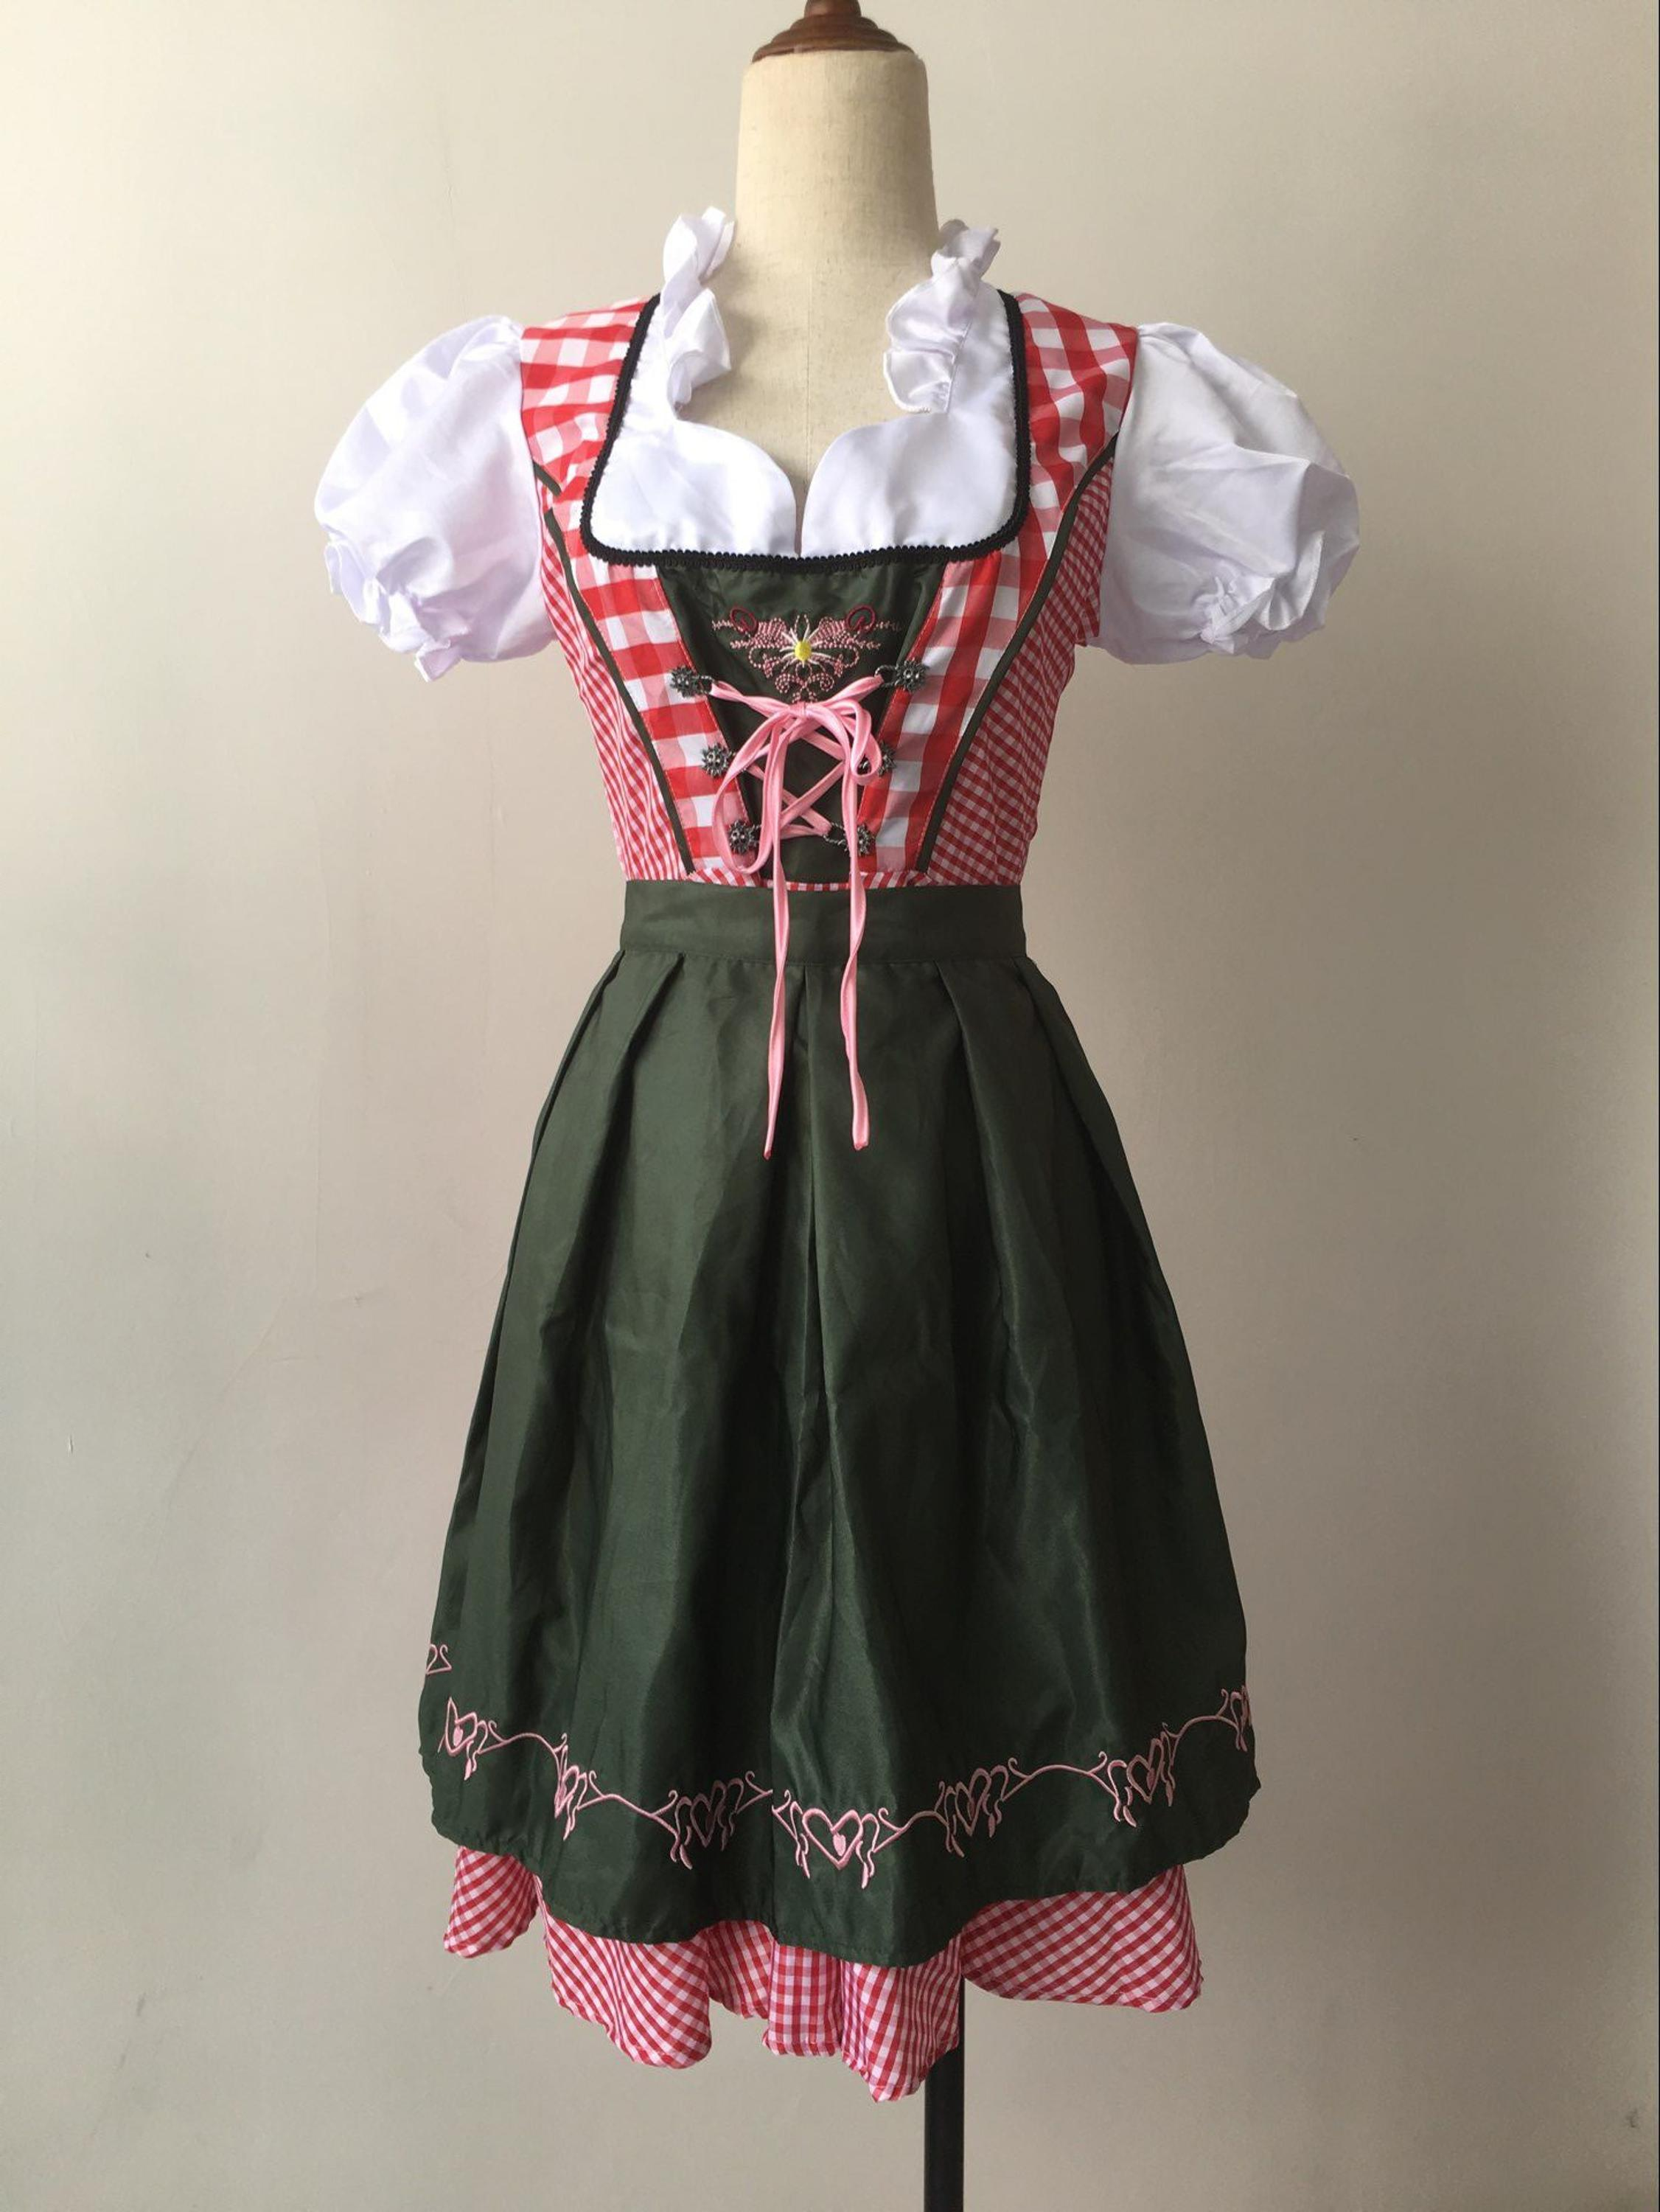 Germany Tradition Costume Oktoberfest Beer Girl Costume Bavarian Dirndl Dress With Apron S-XXXL